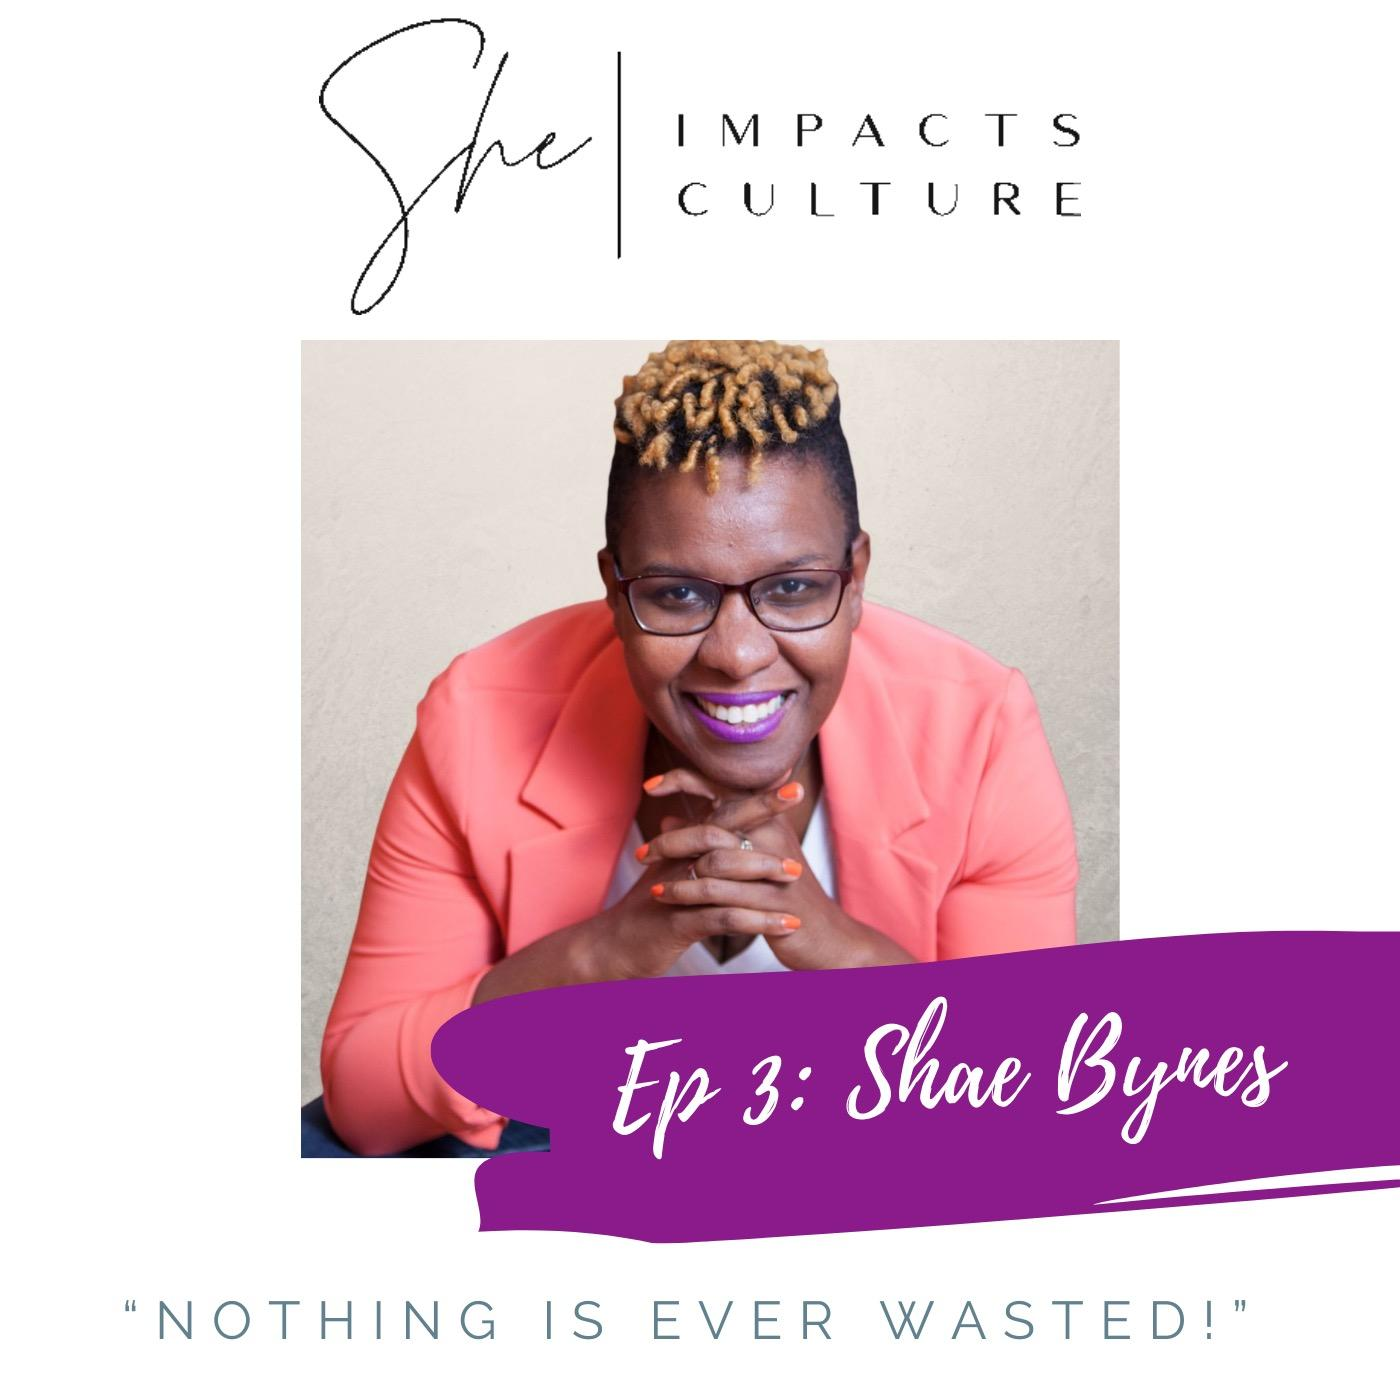 She Impacts Culture Podcast: Shae Bynes Episode #3